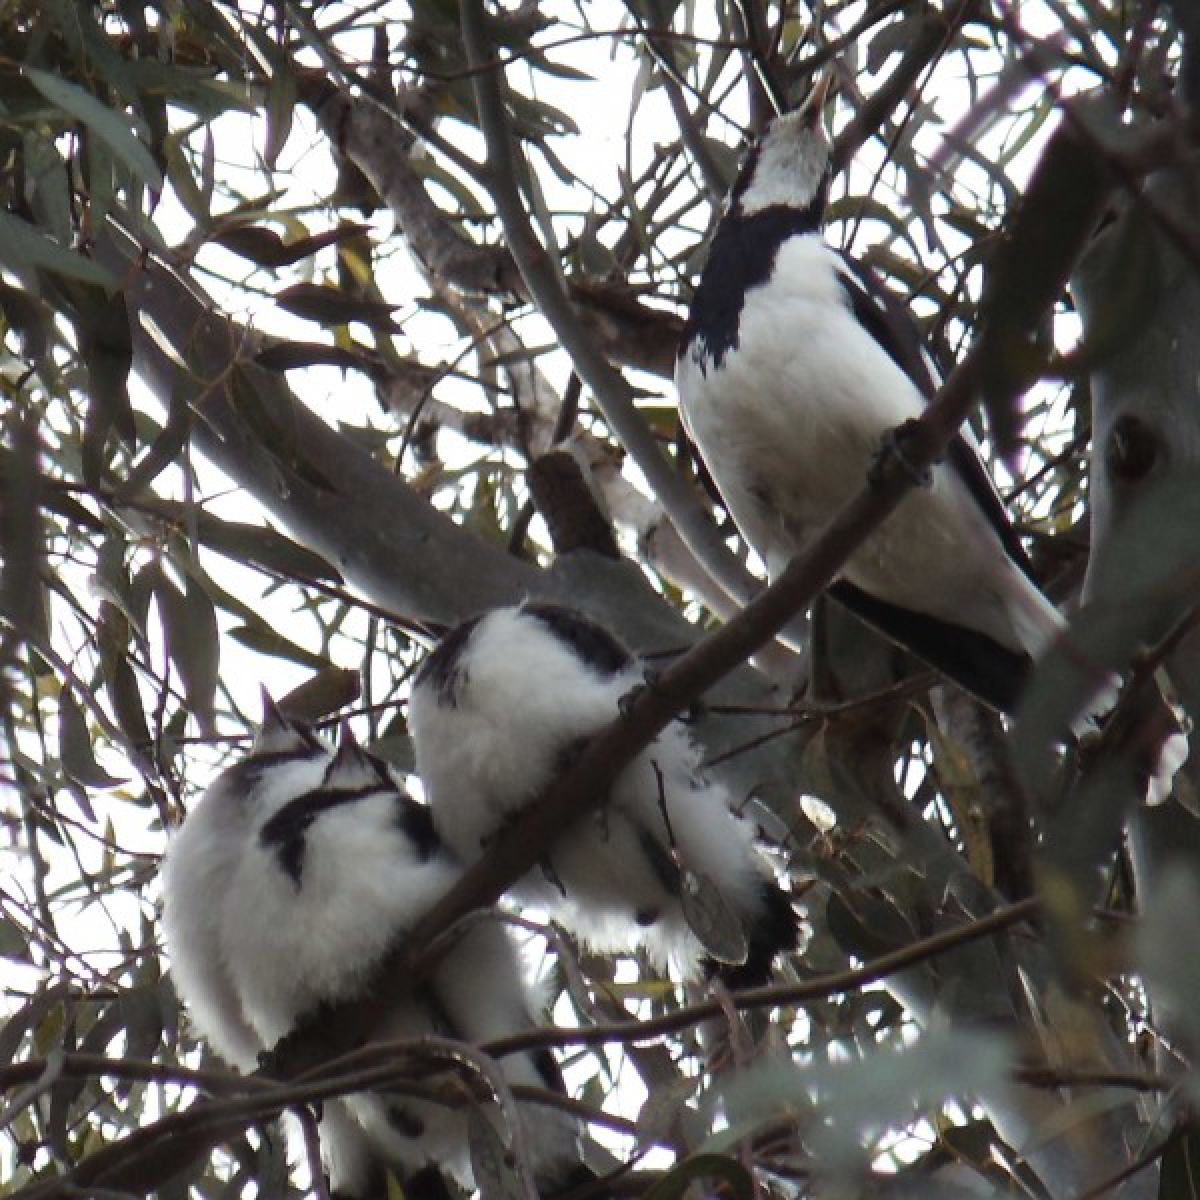 802 Australian Magpie-lark or Peewee with chicks